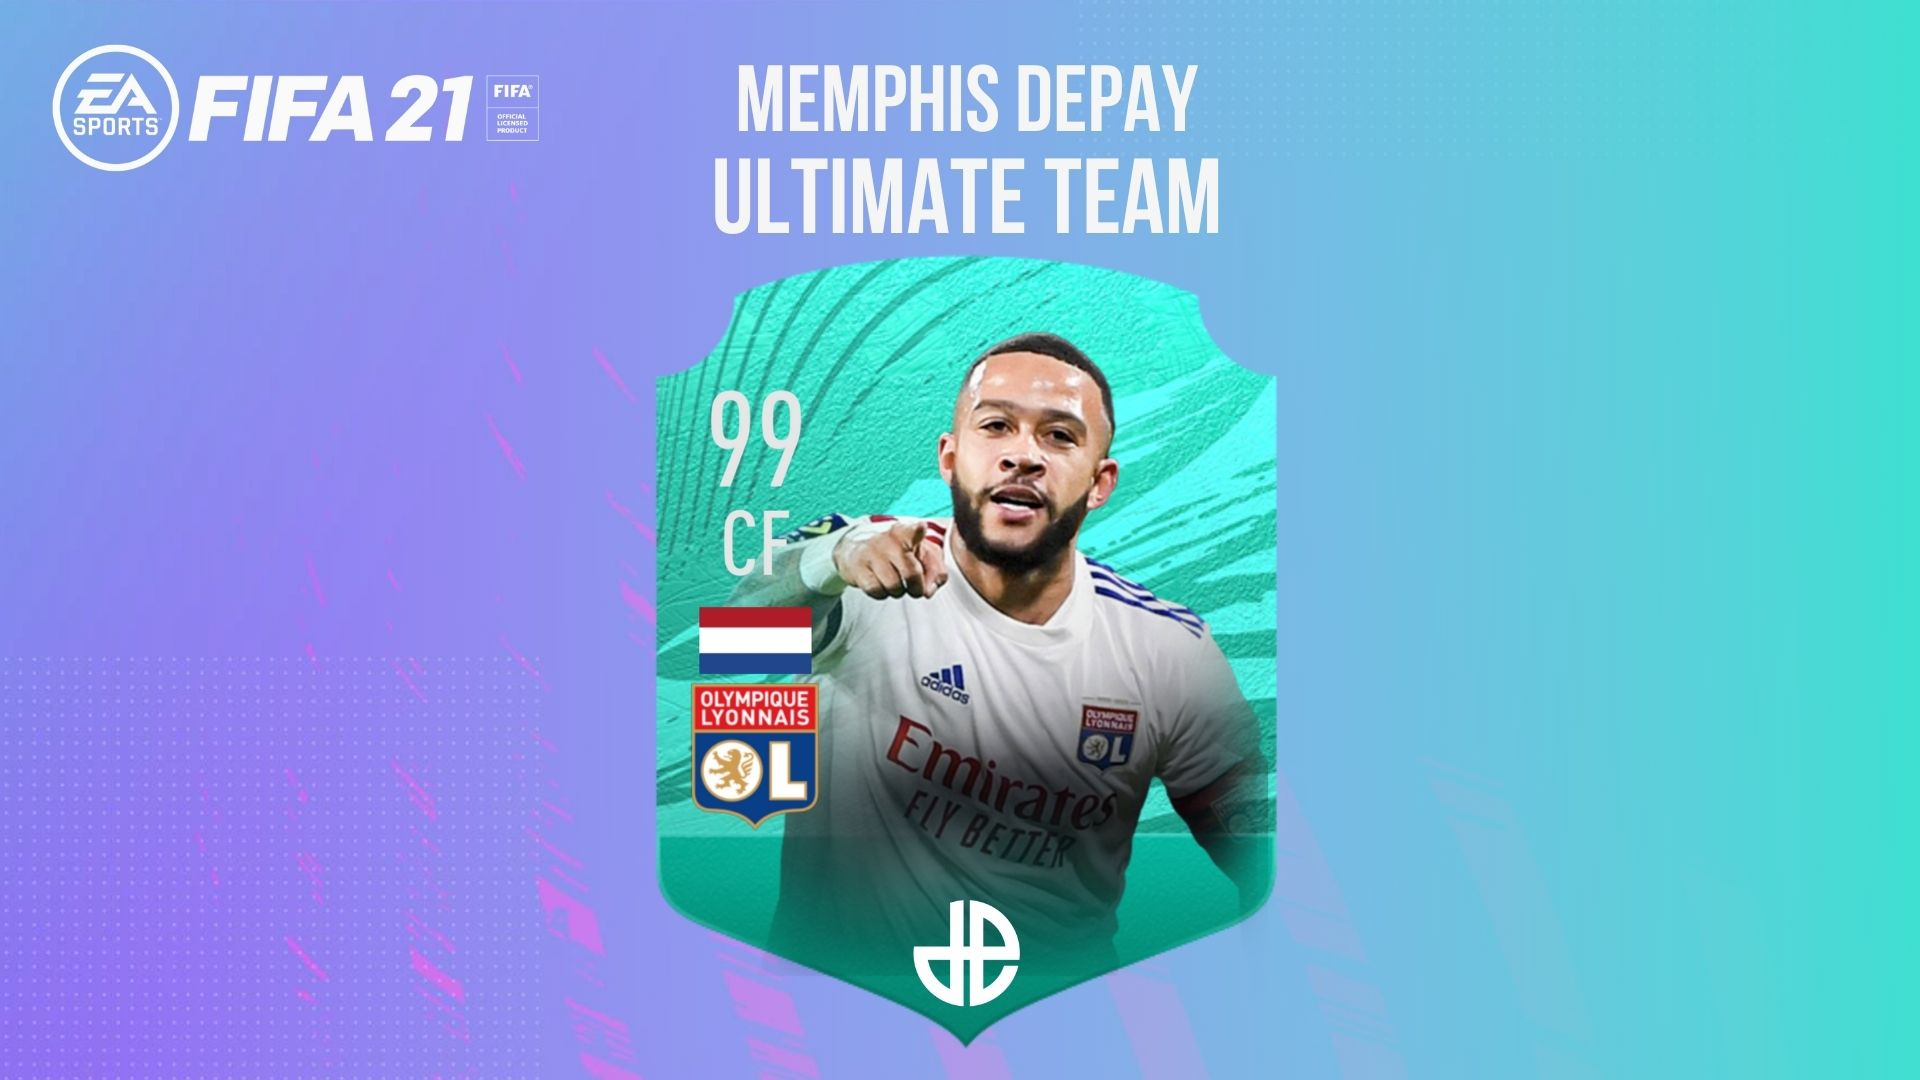 Memphis Depay FIFA Ultimate Team